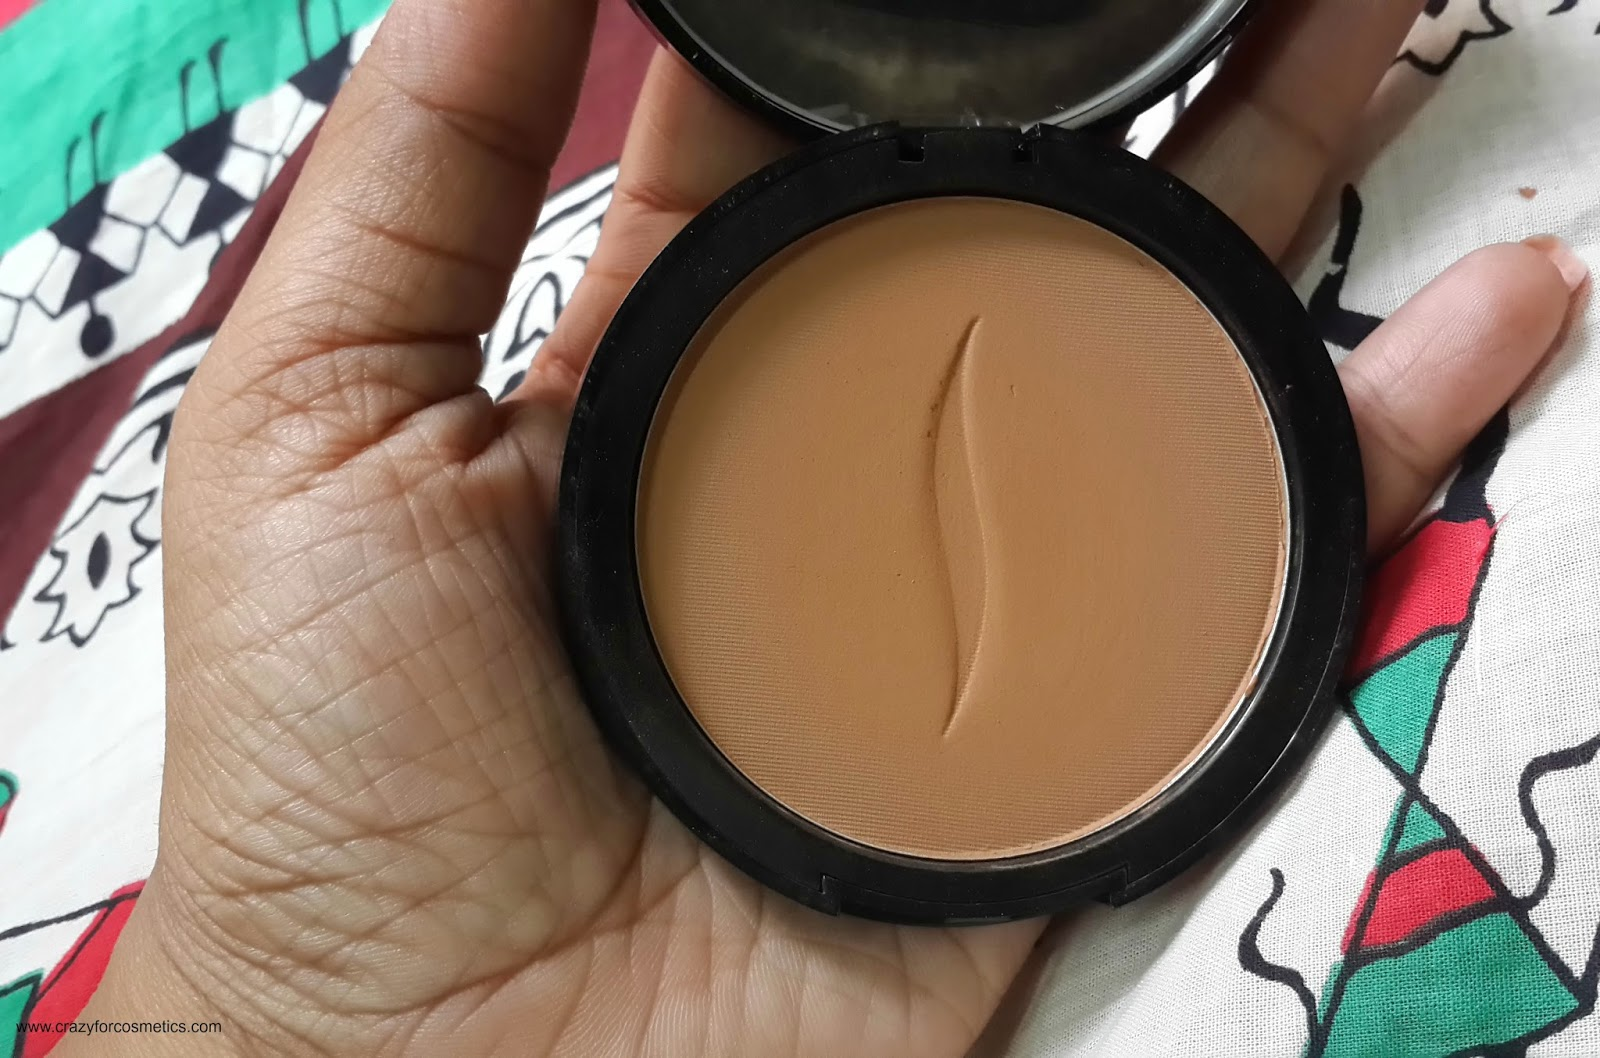 Sephora Bronzing Powder in Shade Medium Review and Swatches- Sephora Bronzer Powder in shade Medium review- Sephora in Paris- Sephora shopping- Sephora cosmetics bronzer powder- Sephora Contour powder- Matte bronzer powder